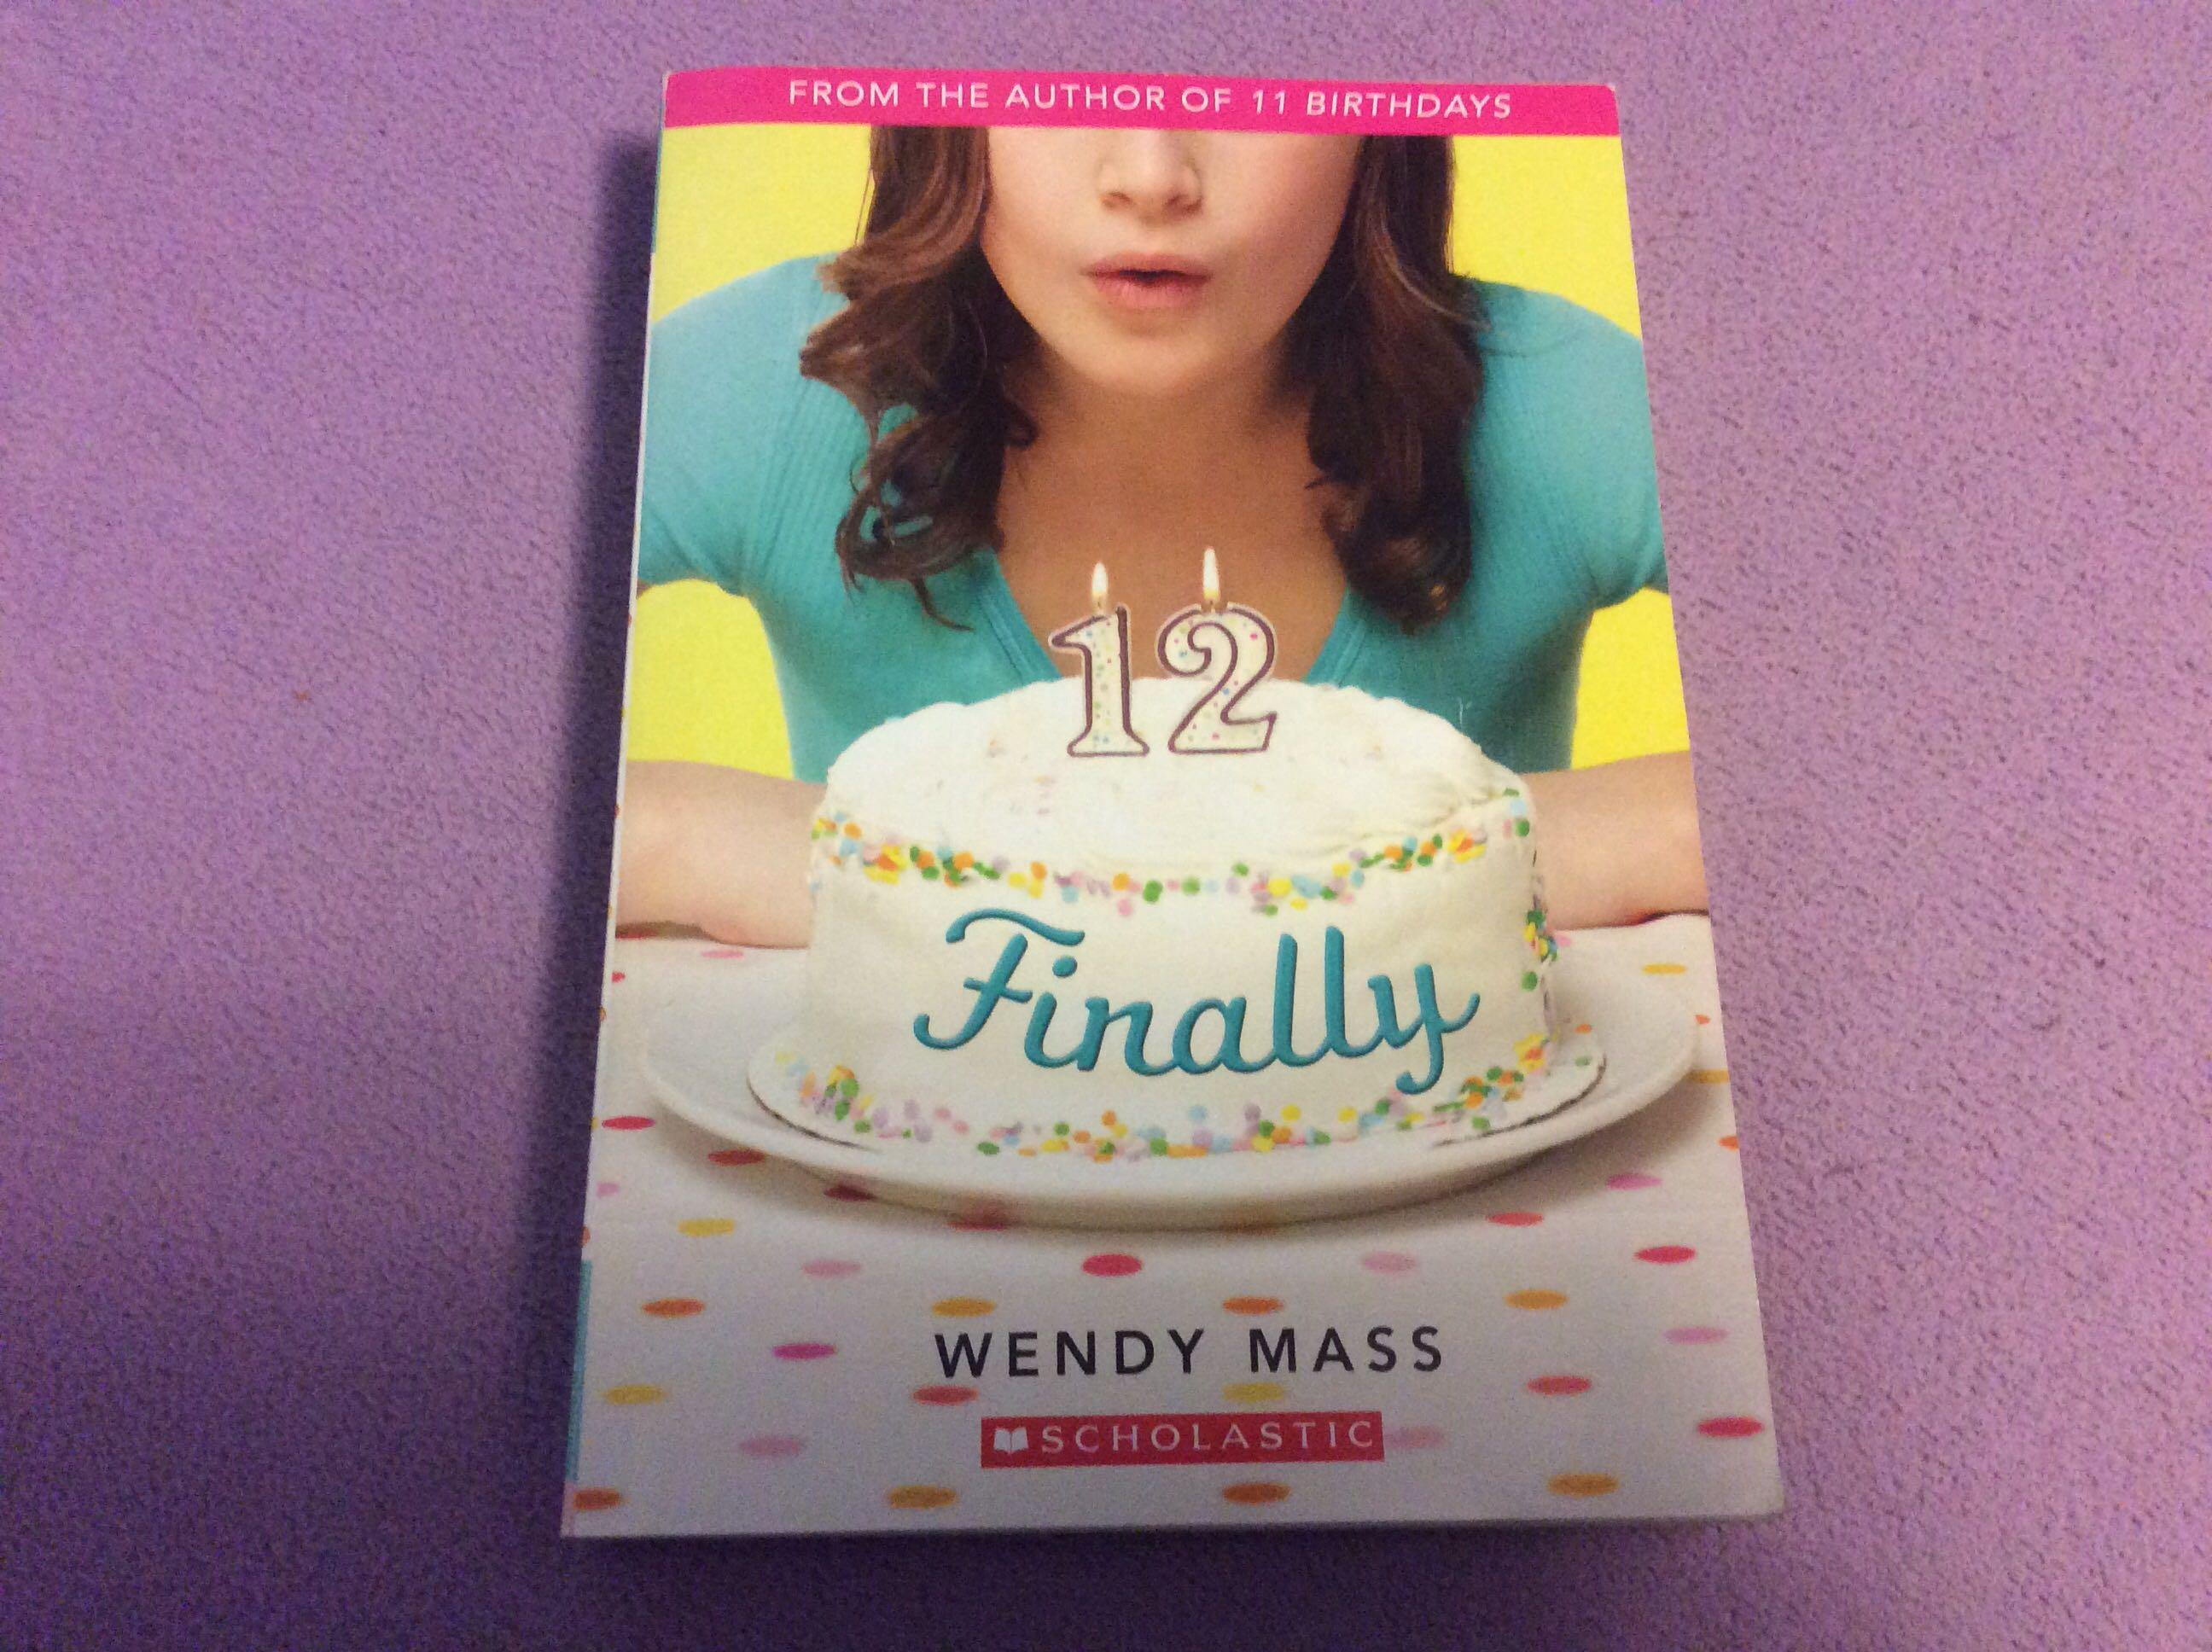 Wendy Mass books